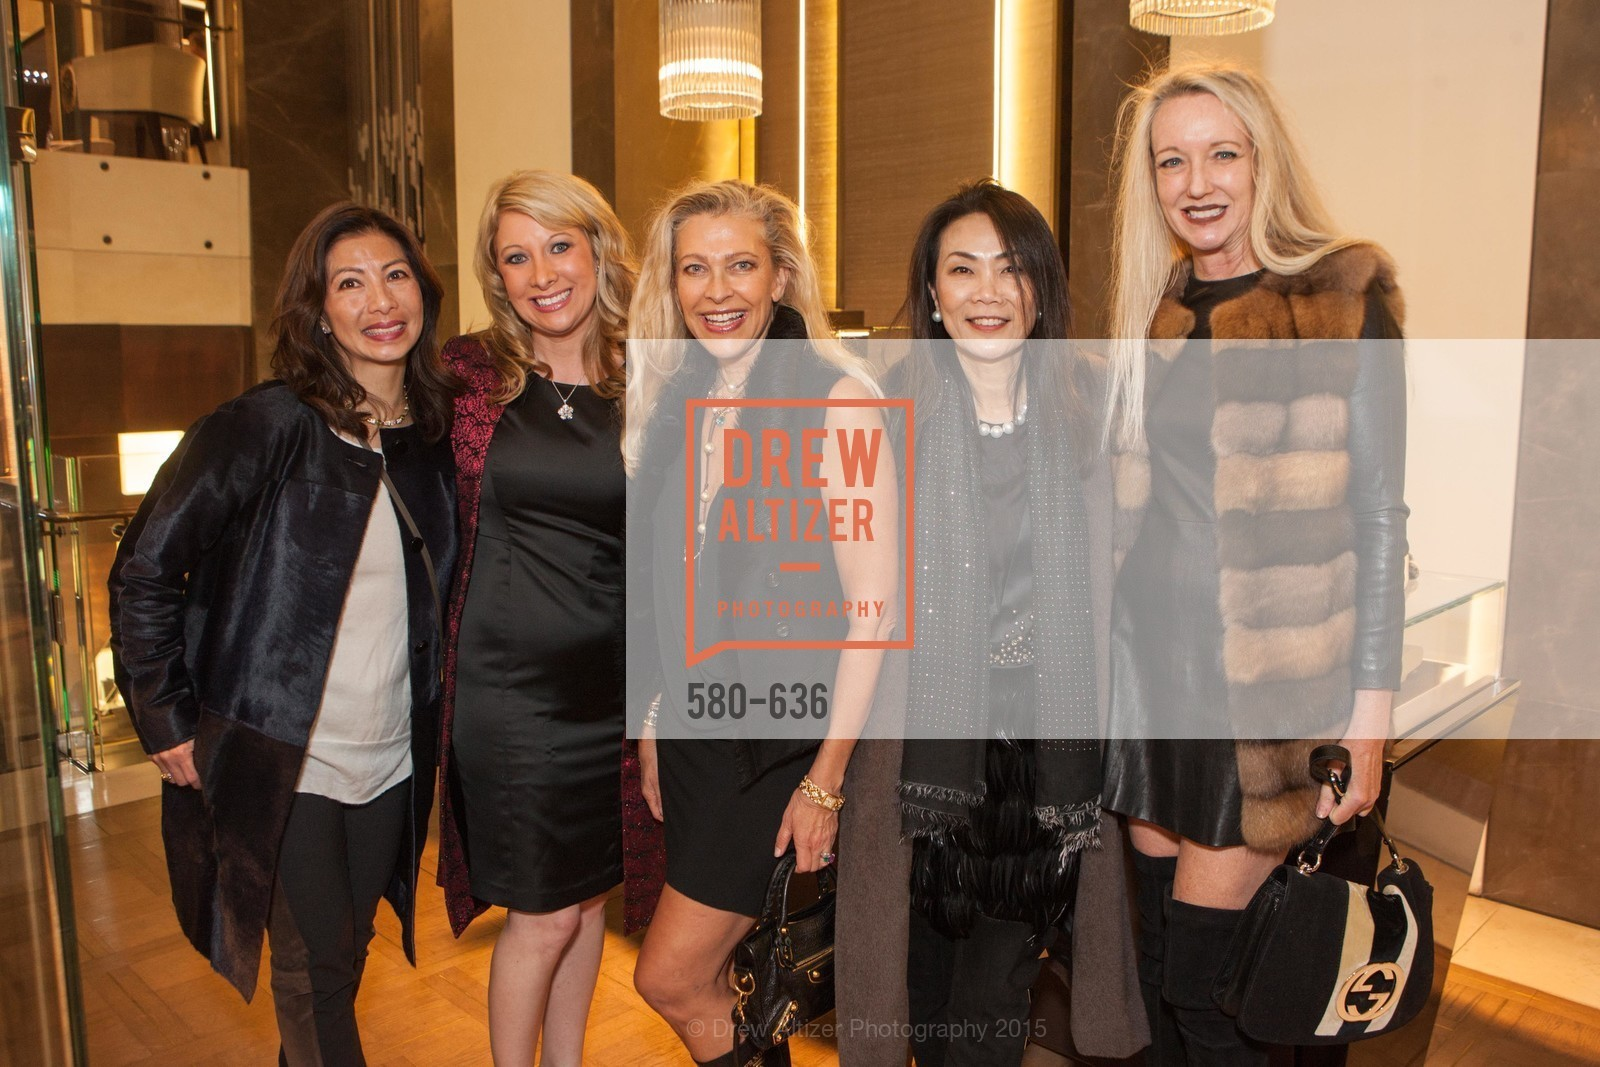 MIchelle Tai, Jennifer Mancuso, Suzanna Jackson, Xiaojun Lee, Dorothy Torresi, Bulgari San Francisco Presents WINE, WHISKEY & WATCHES, Bulgari San Francisco. 200 Stockton Street, December 8th, 2015,Drew Altizer, Drew Altizer Photography, full-service agency, private events, San Francisco photographer, photographer california